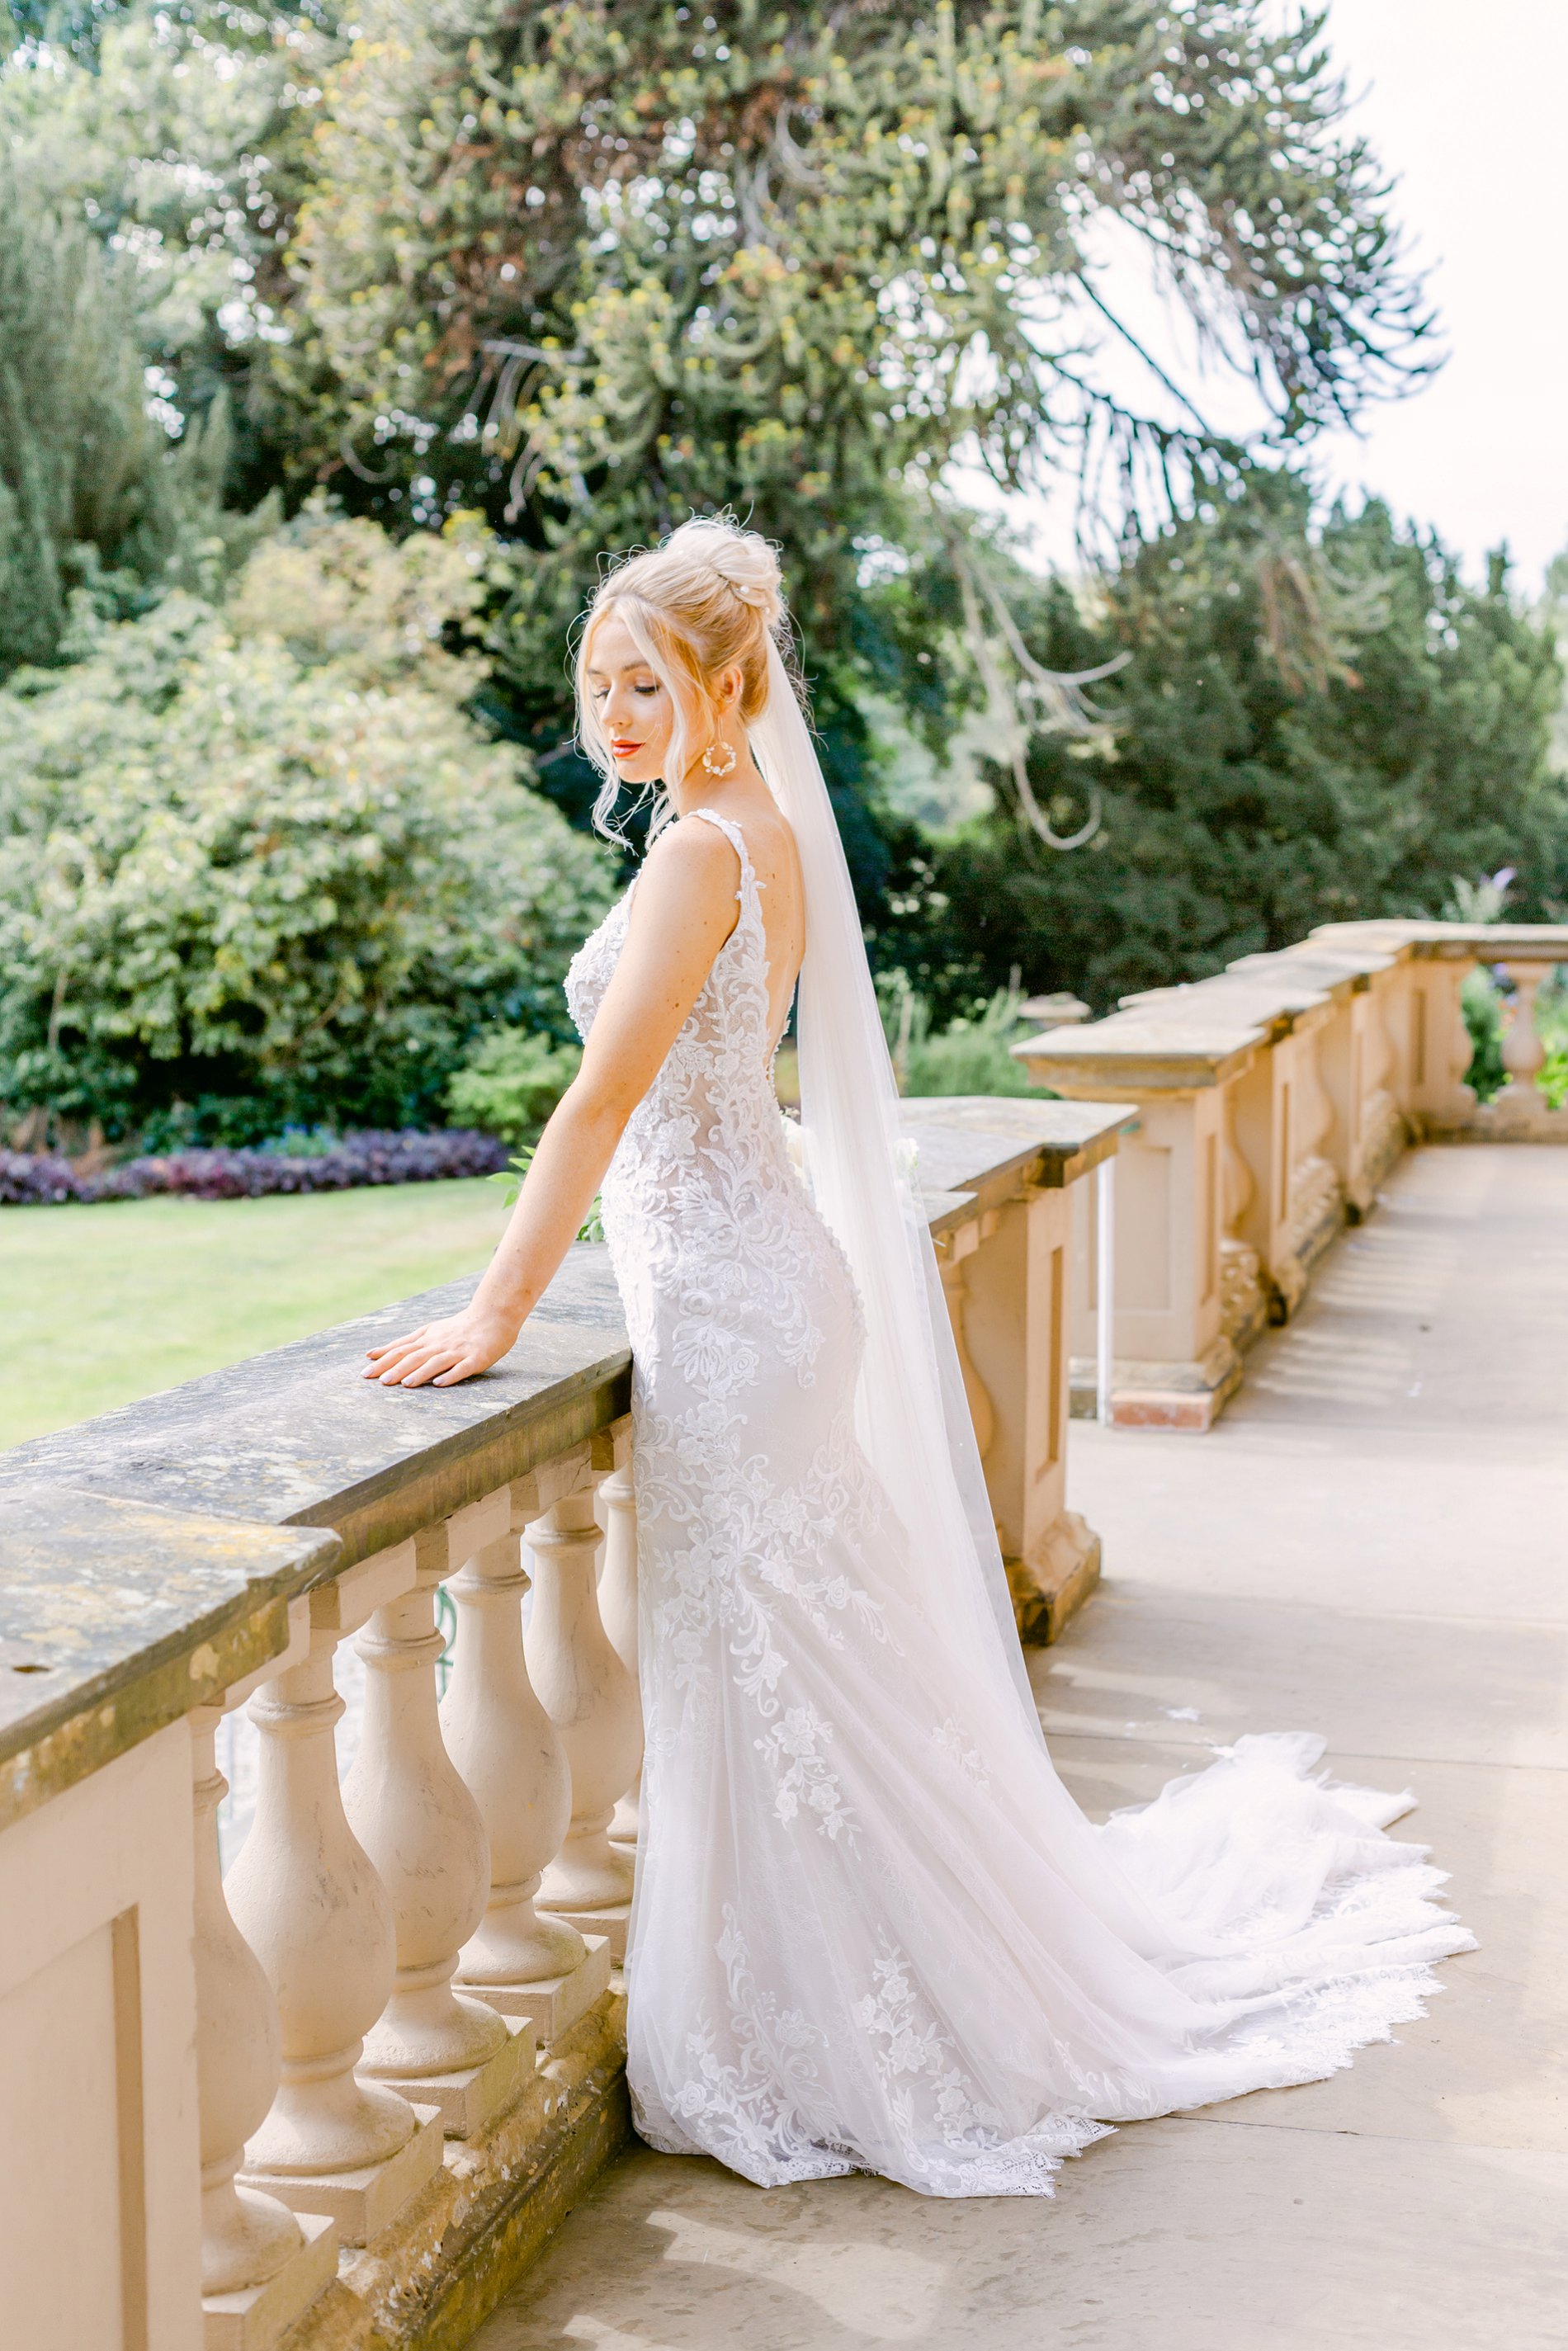 An Elegant UNVEILED Network wedding shoot at Hirst Priory (c) Ailsa Reeve Photography (40)